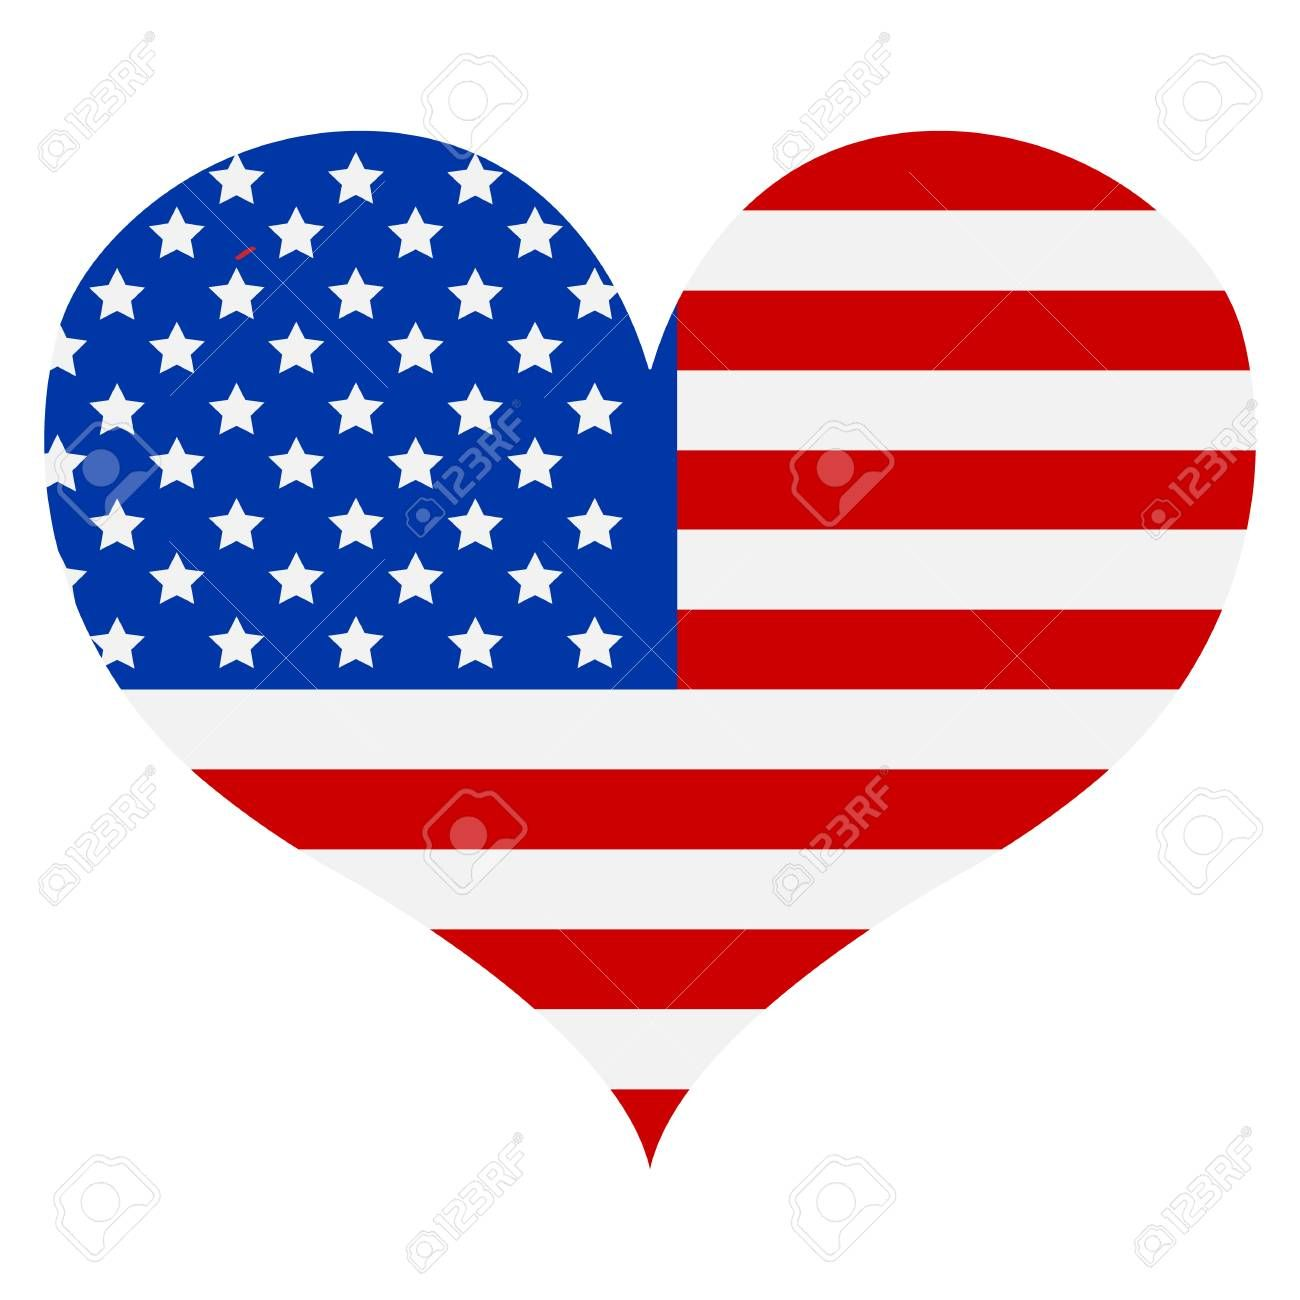 American Flag Icon Happy 4 Th July And Independence Day Vector Illustration Illustration Affiliate Happy In 2020 Flag Icon American Flag Vector Illustration